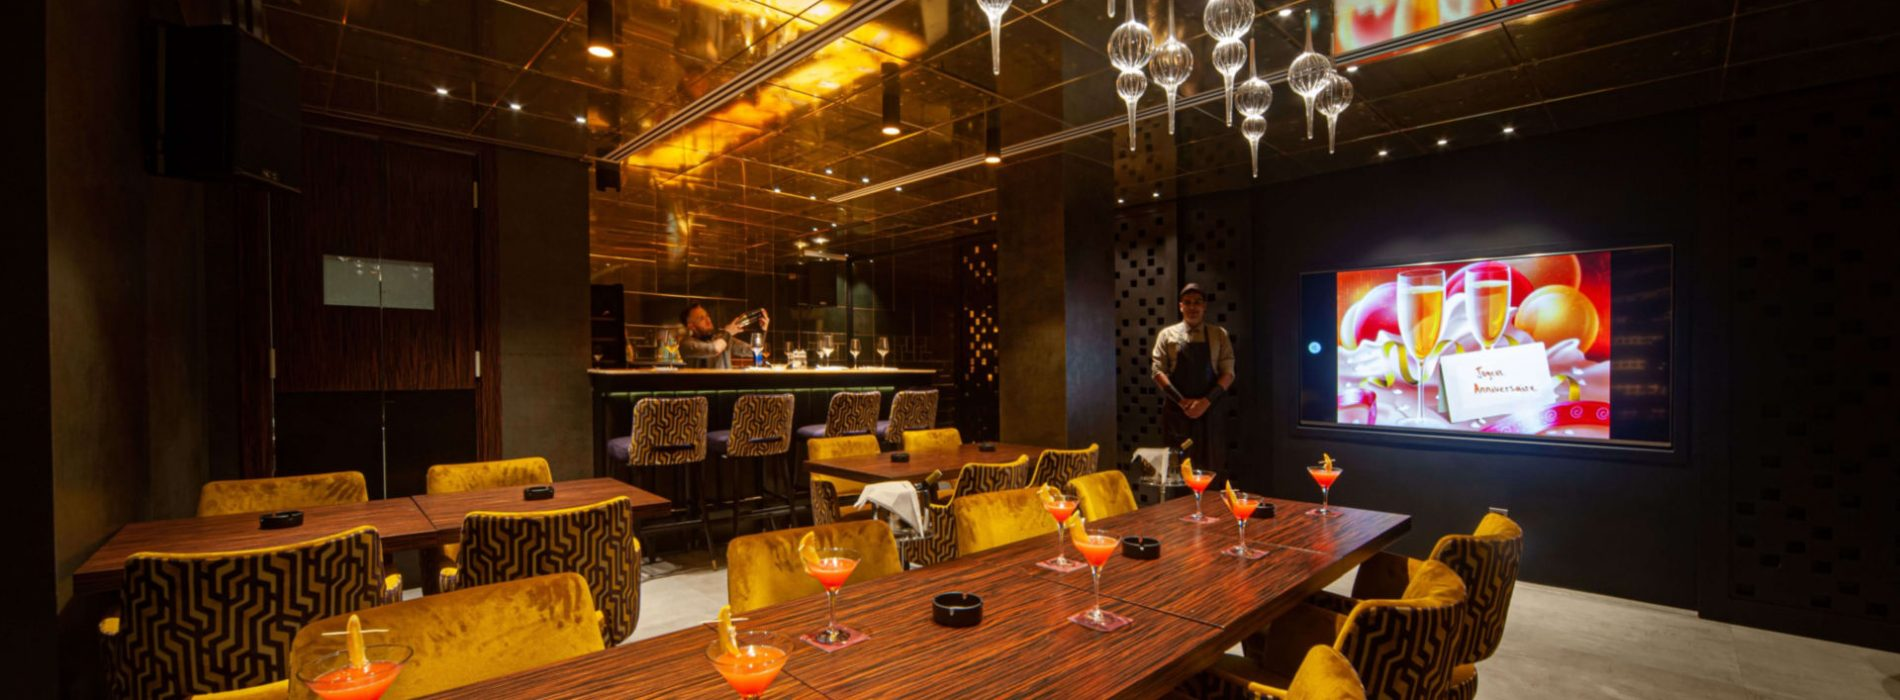 Urban Lounge & Restaurant - Rabat -featured